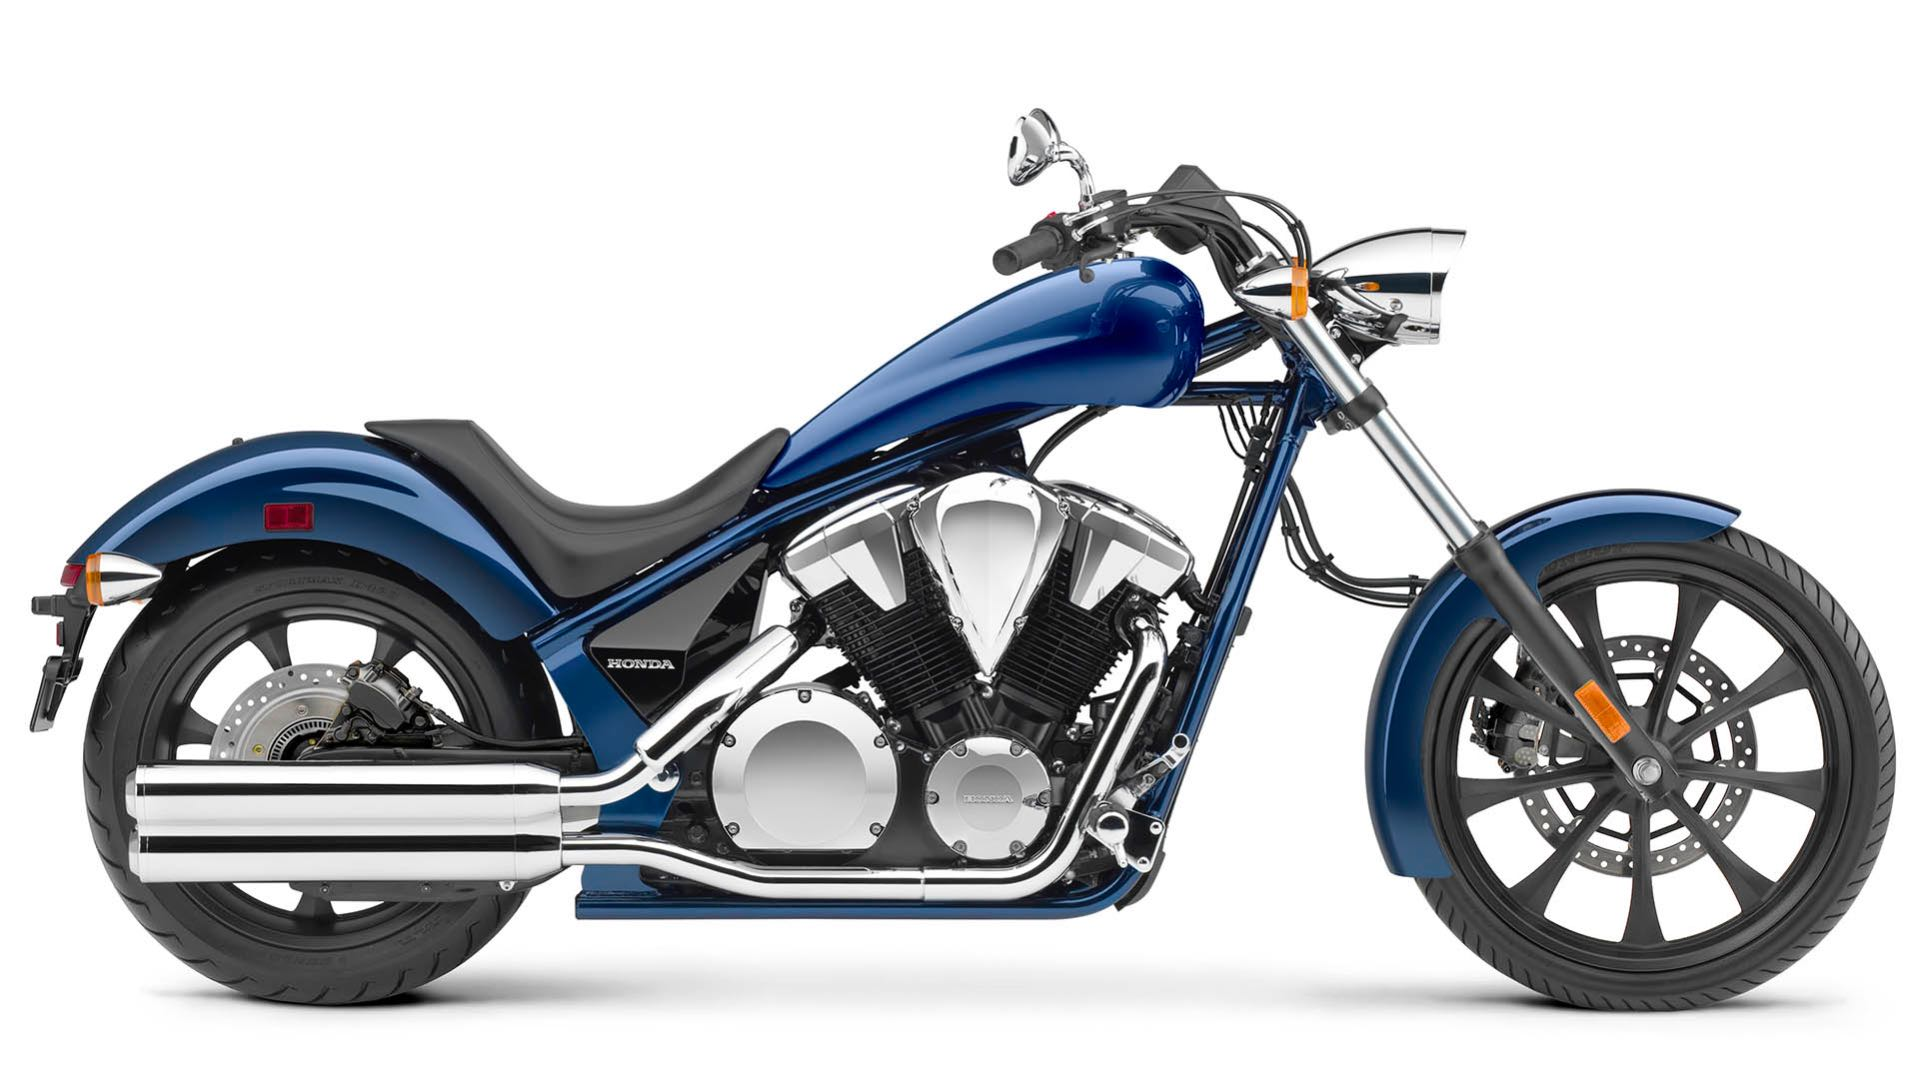 2020 Honda Fury Buyer's Guide: Price & Specs